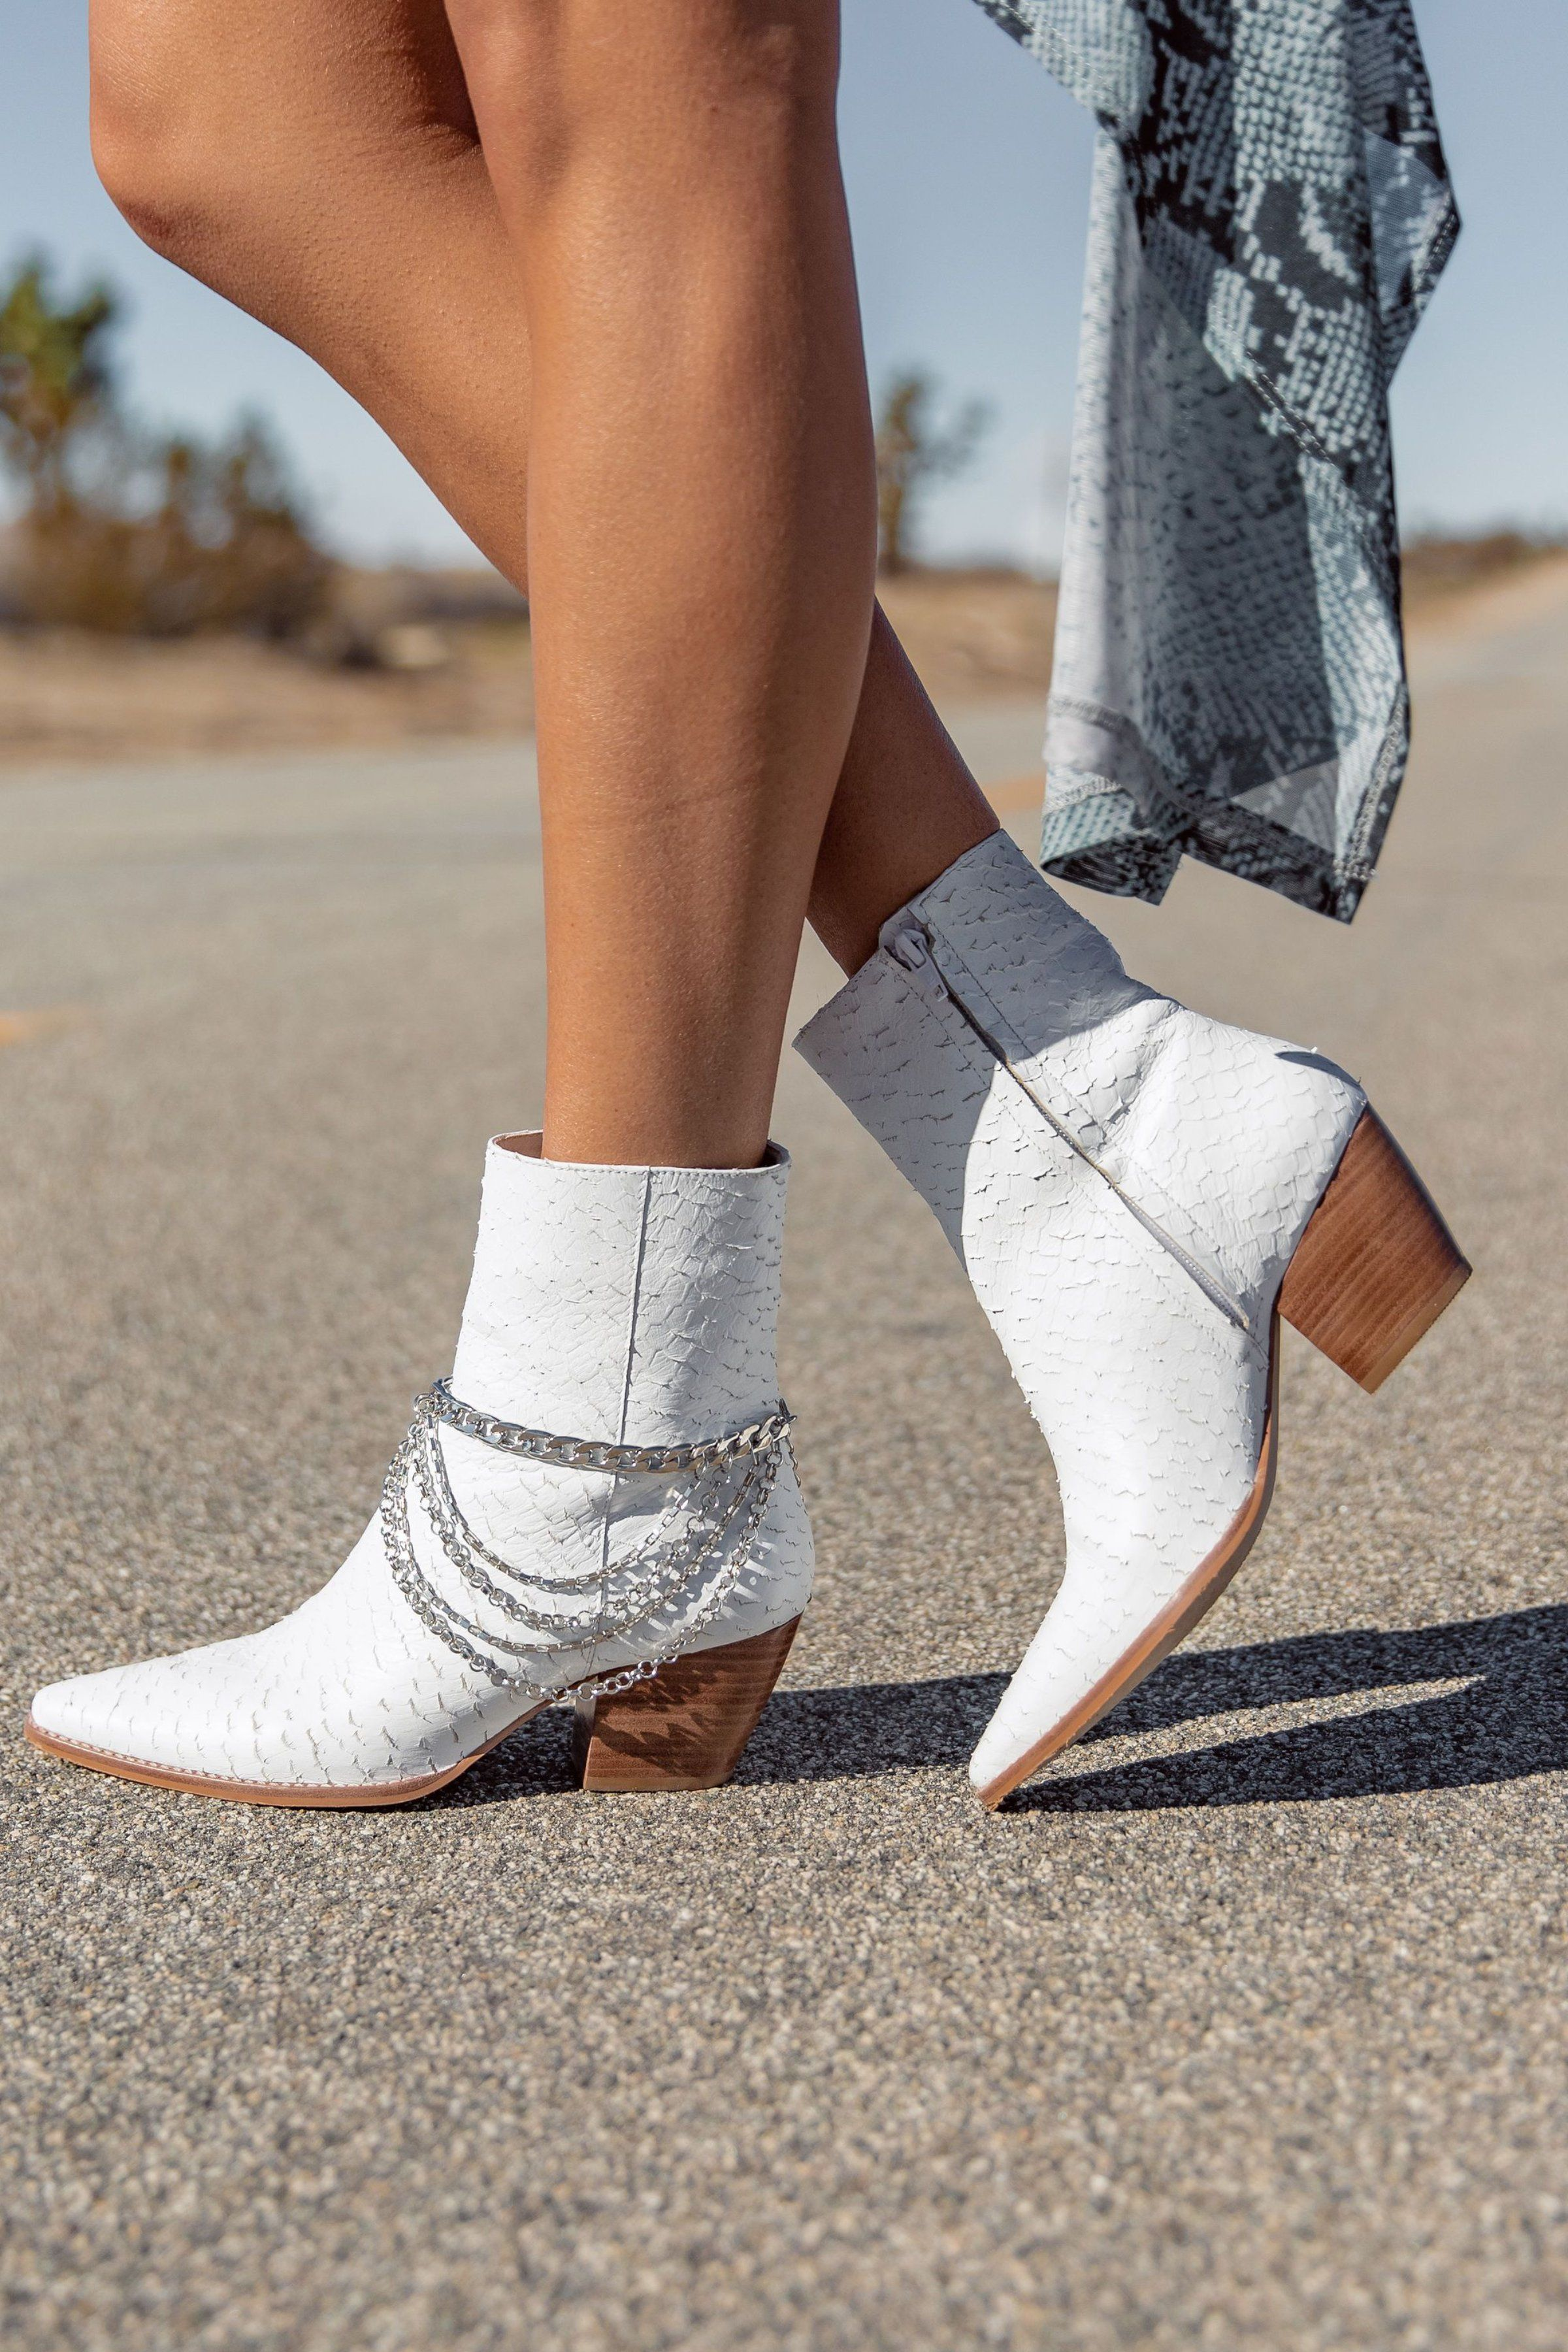 White Python Matisse Caty Bootie Exclusive 12th Tribe Trending Womens Shoes Boots Shoes